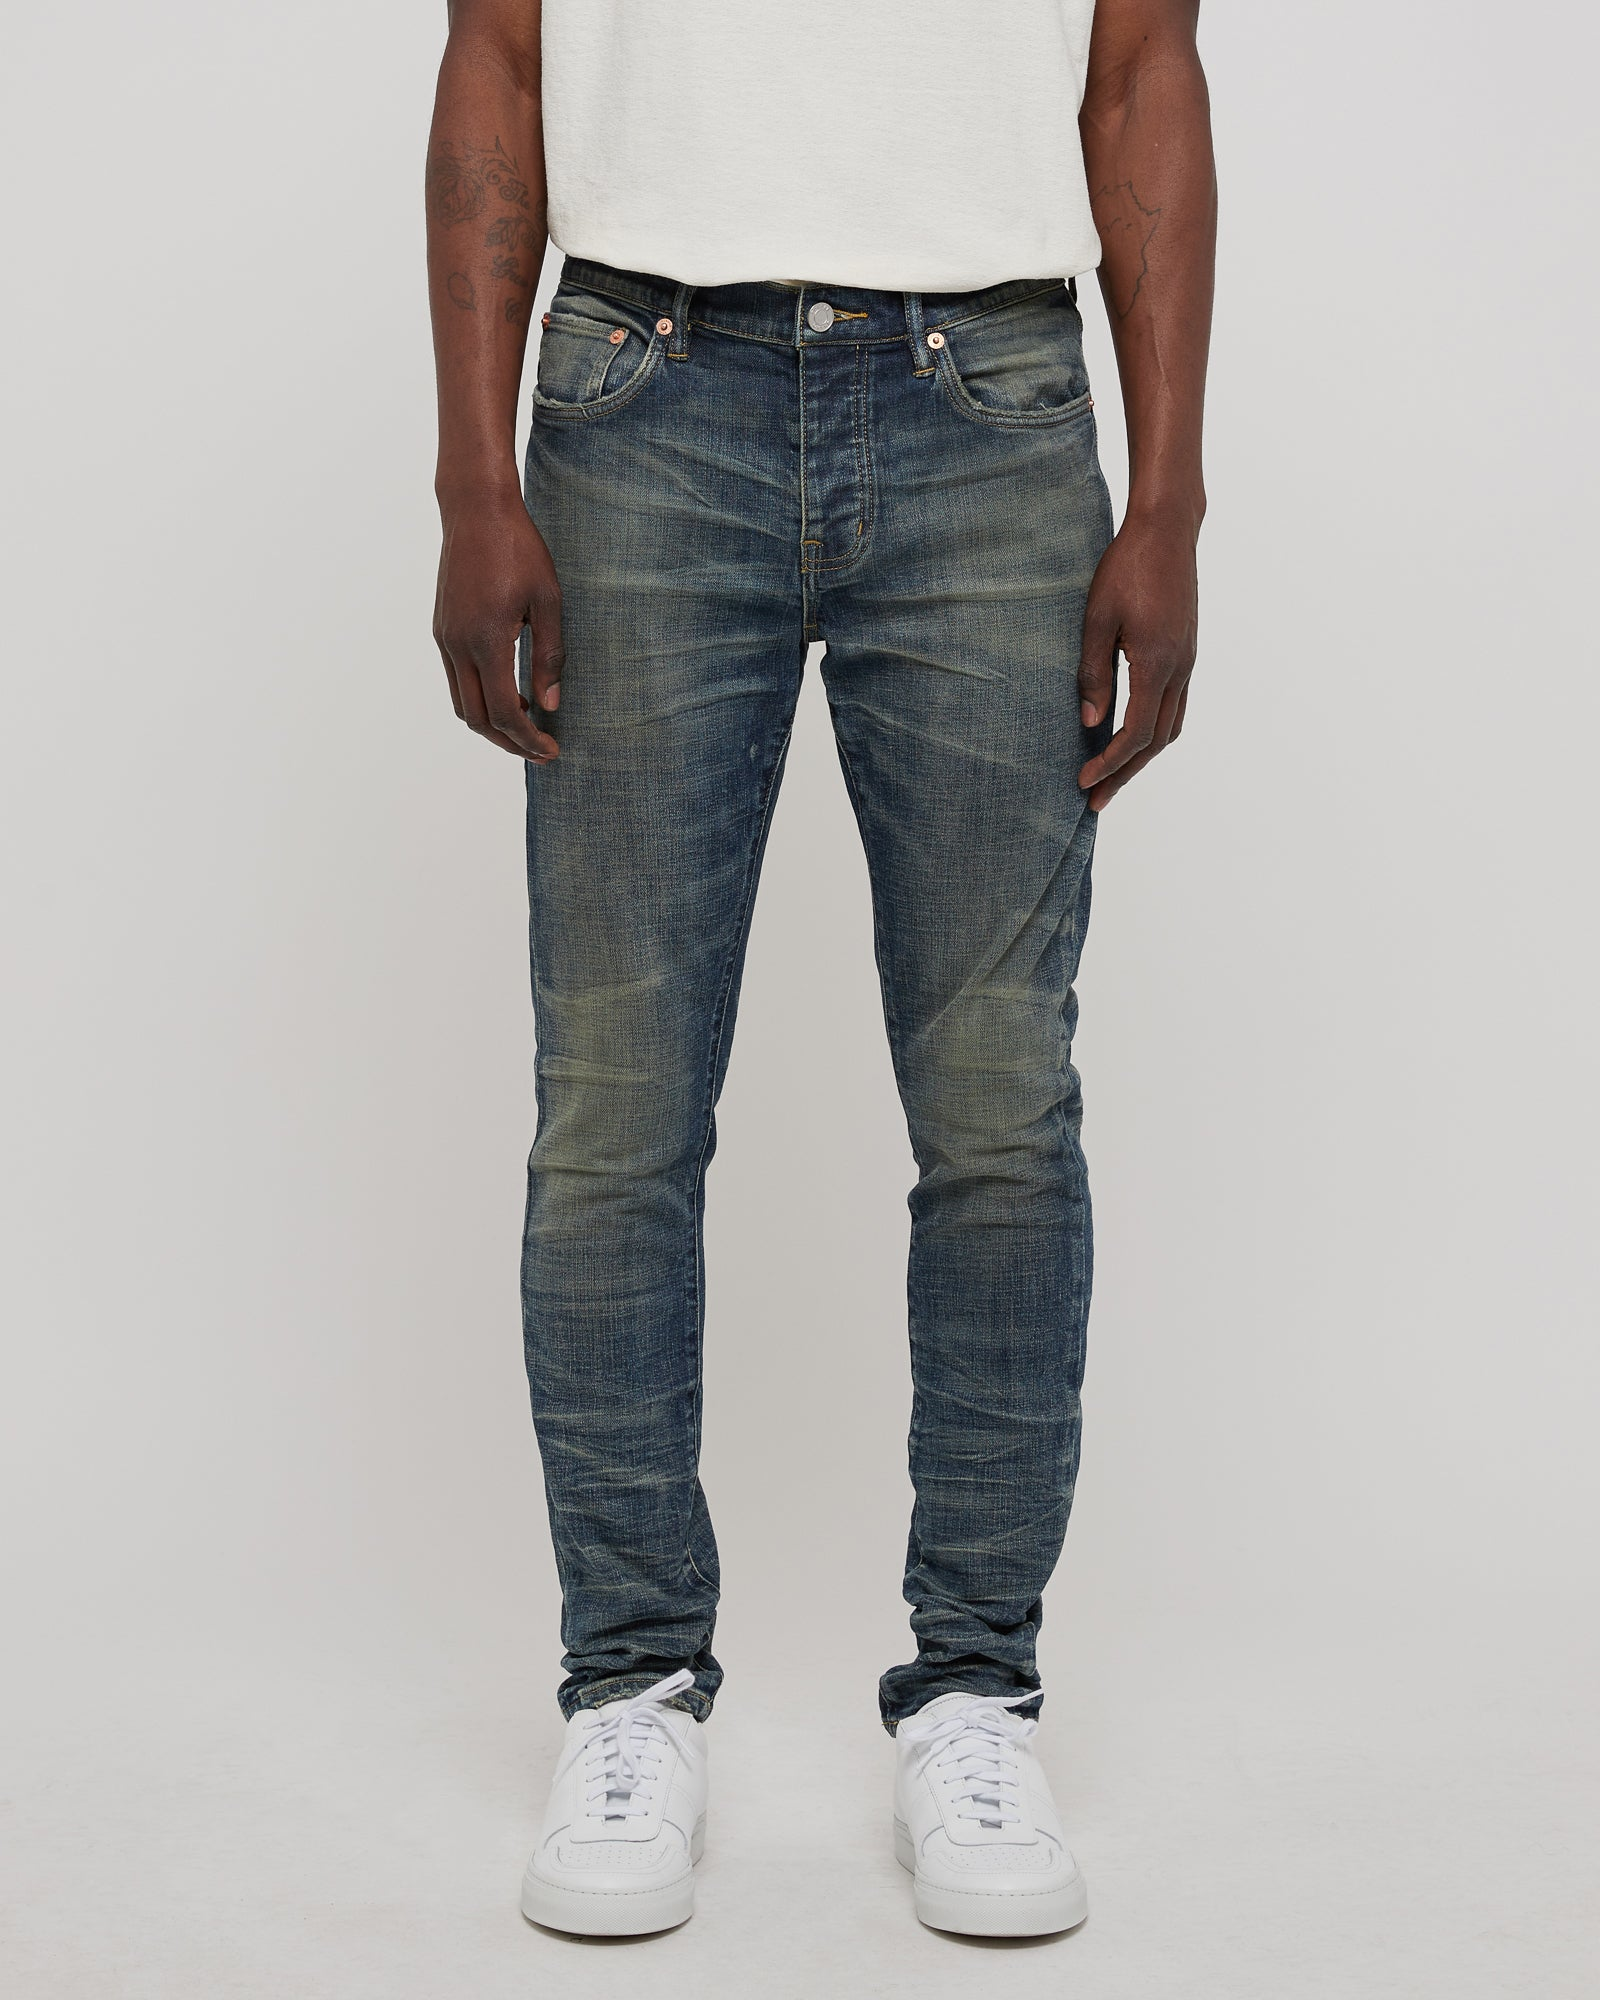 001 Slim Fit Denim in Gastown Vintage